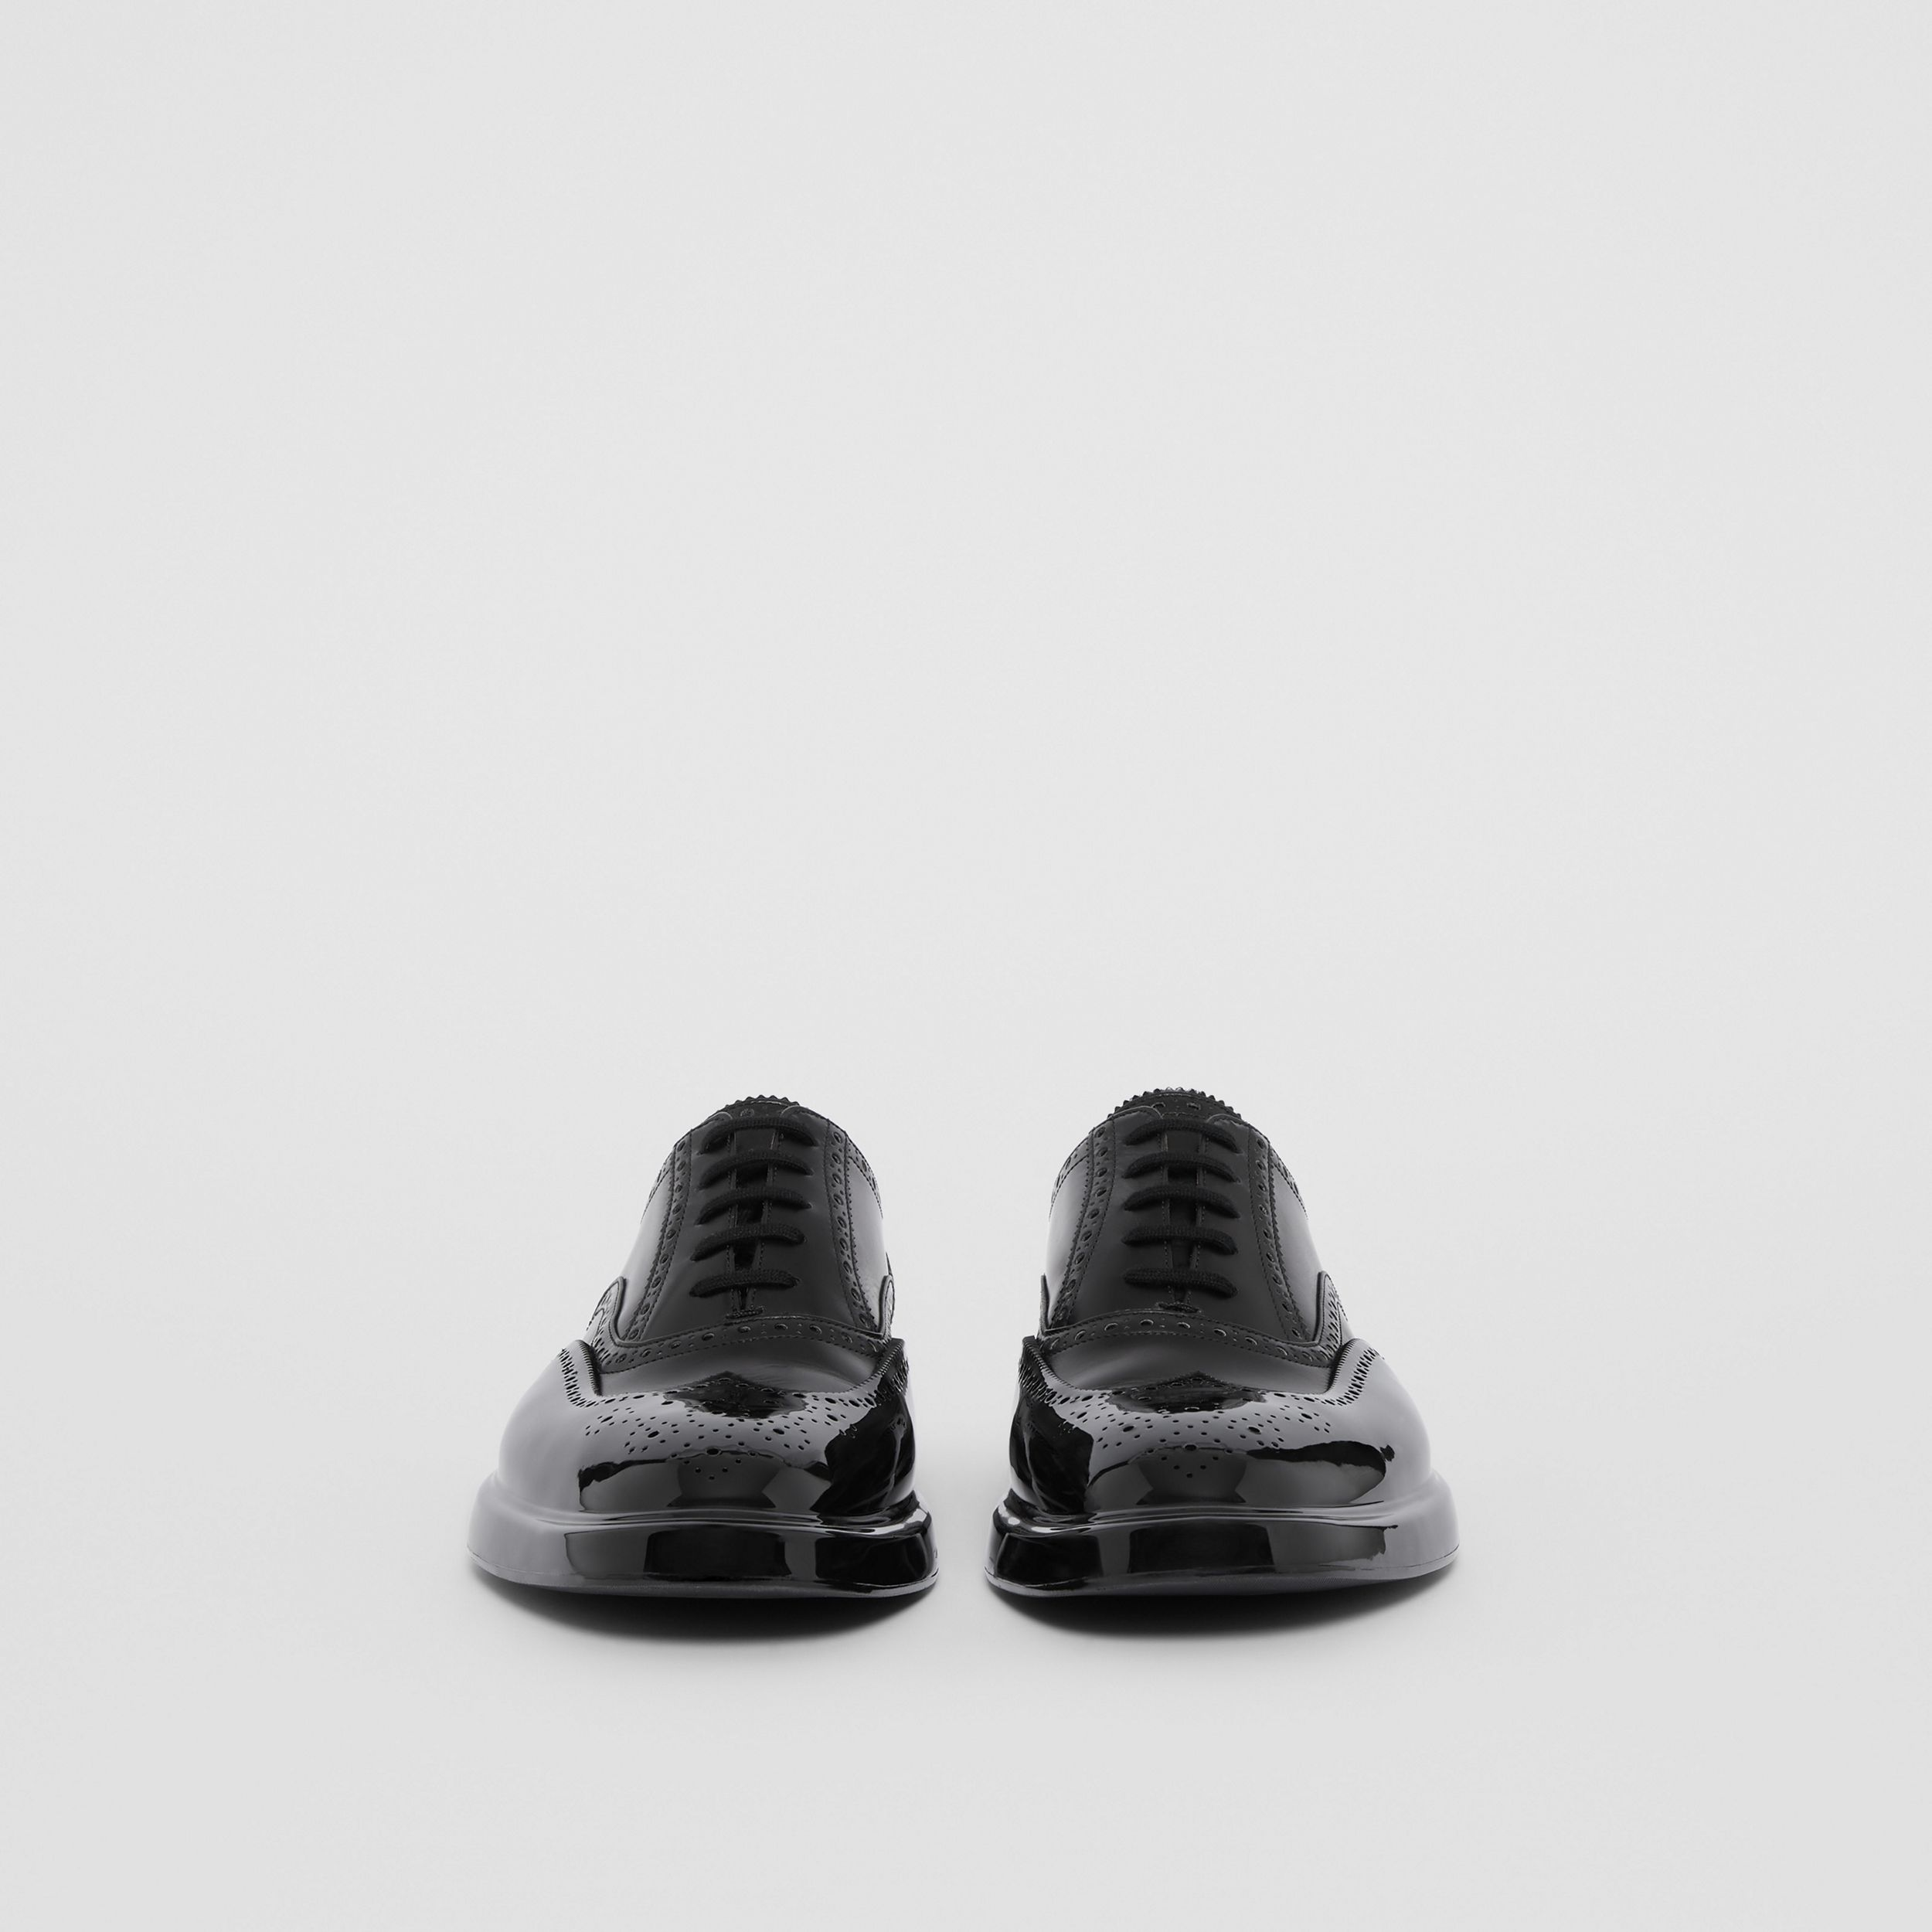 Toe Cap Detail Leather Oxford Brogues in Black - Men | Burberry - 4